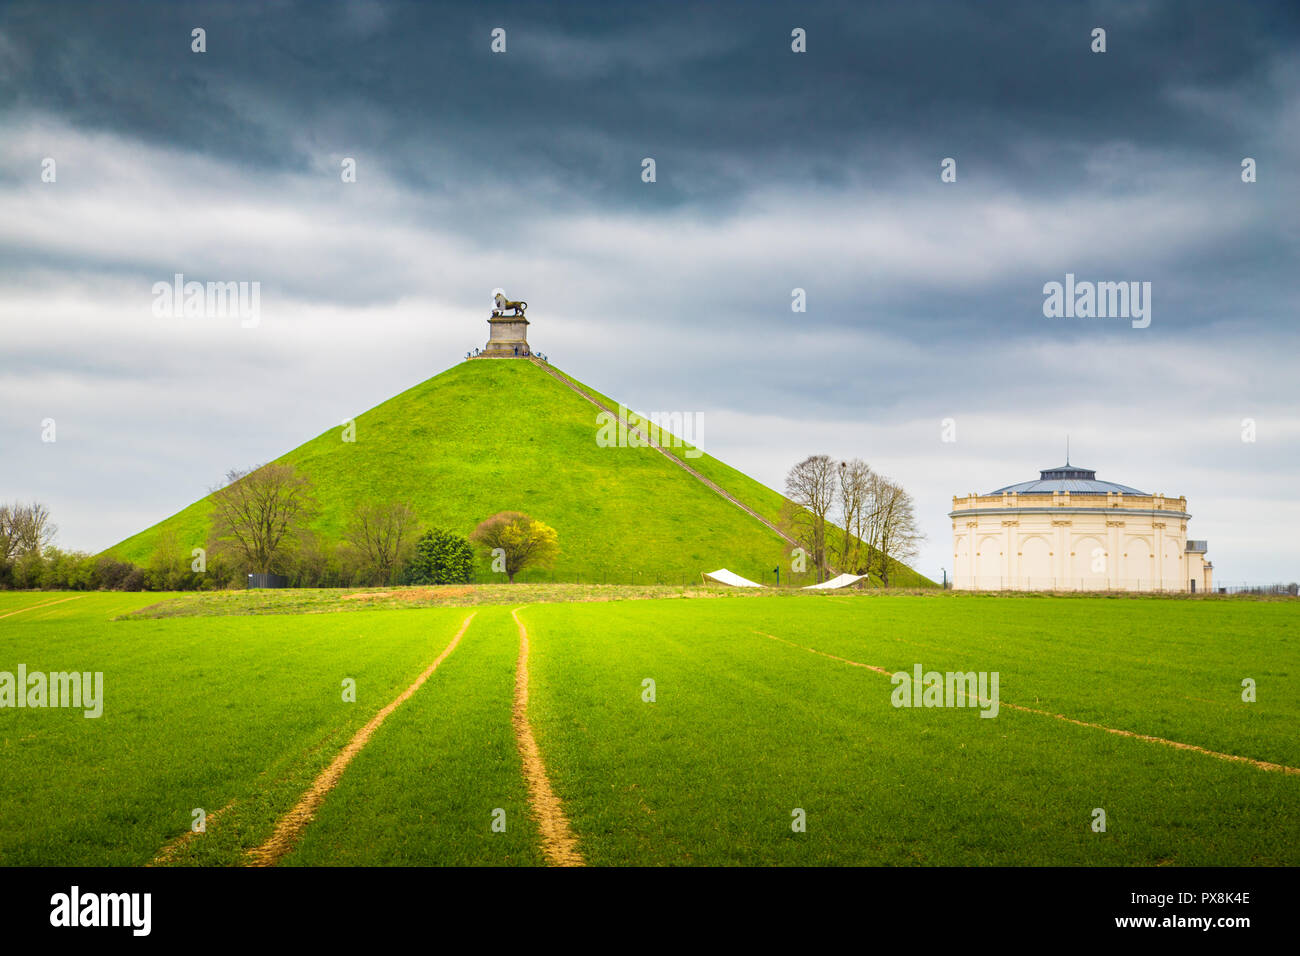 Panorama view of famous Lion's Mound (Butte du Lion) memorial site, a conical artificial hill located in the municipality of Braine-l'Alleud comemmora - Stock Image